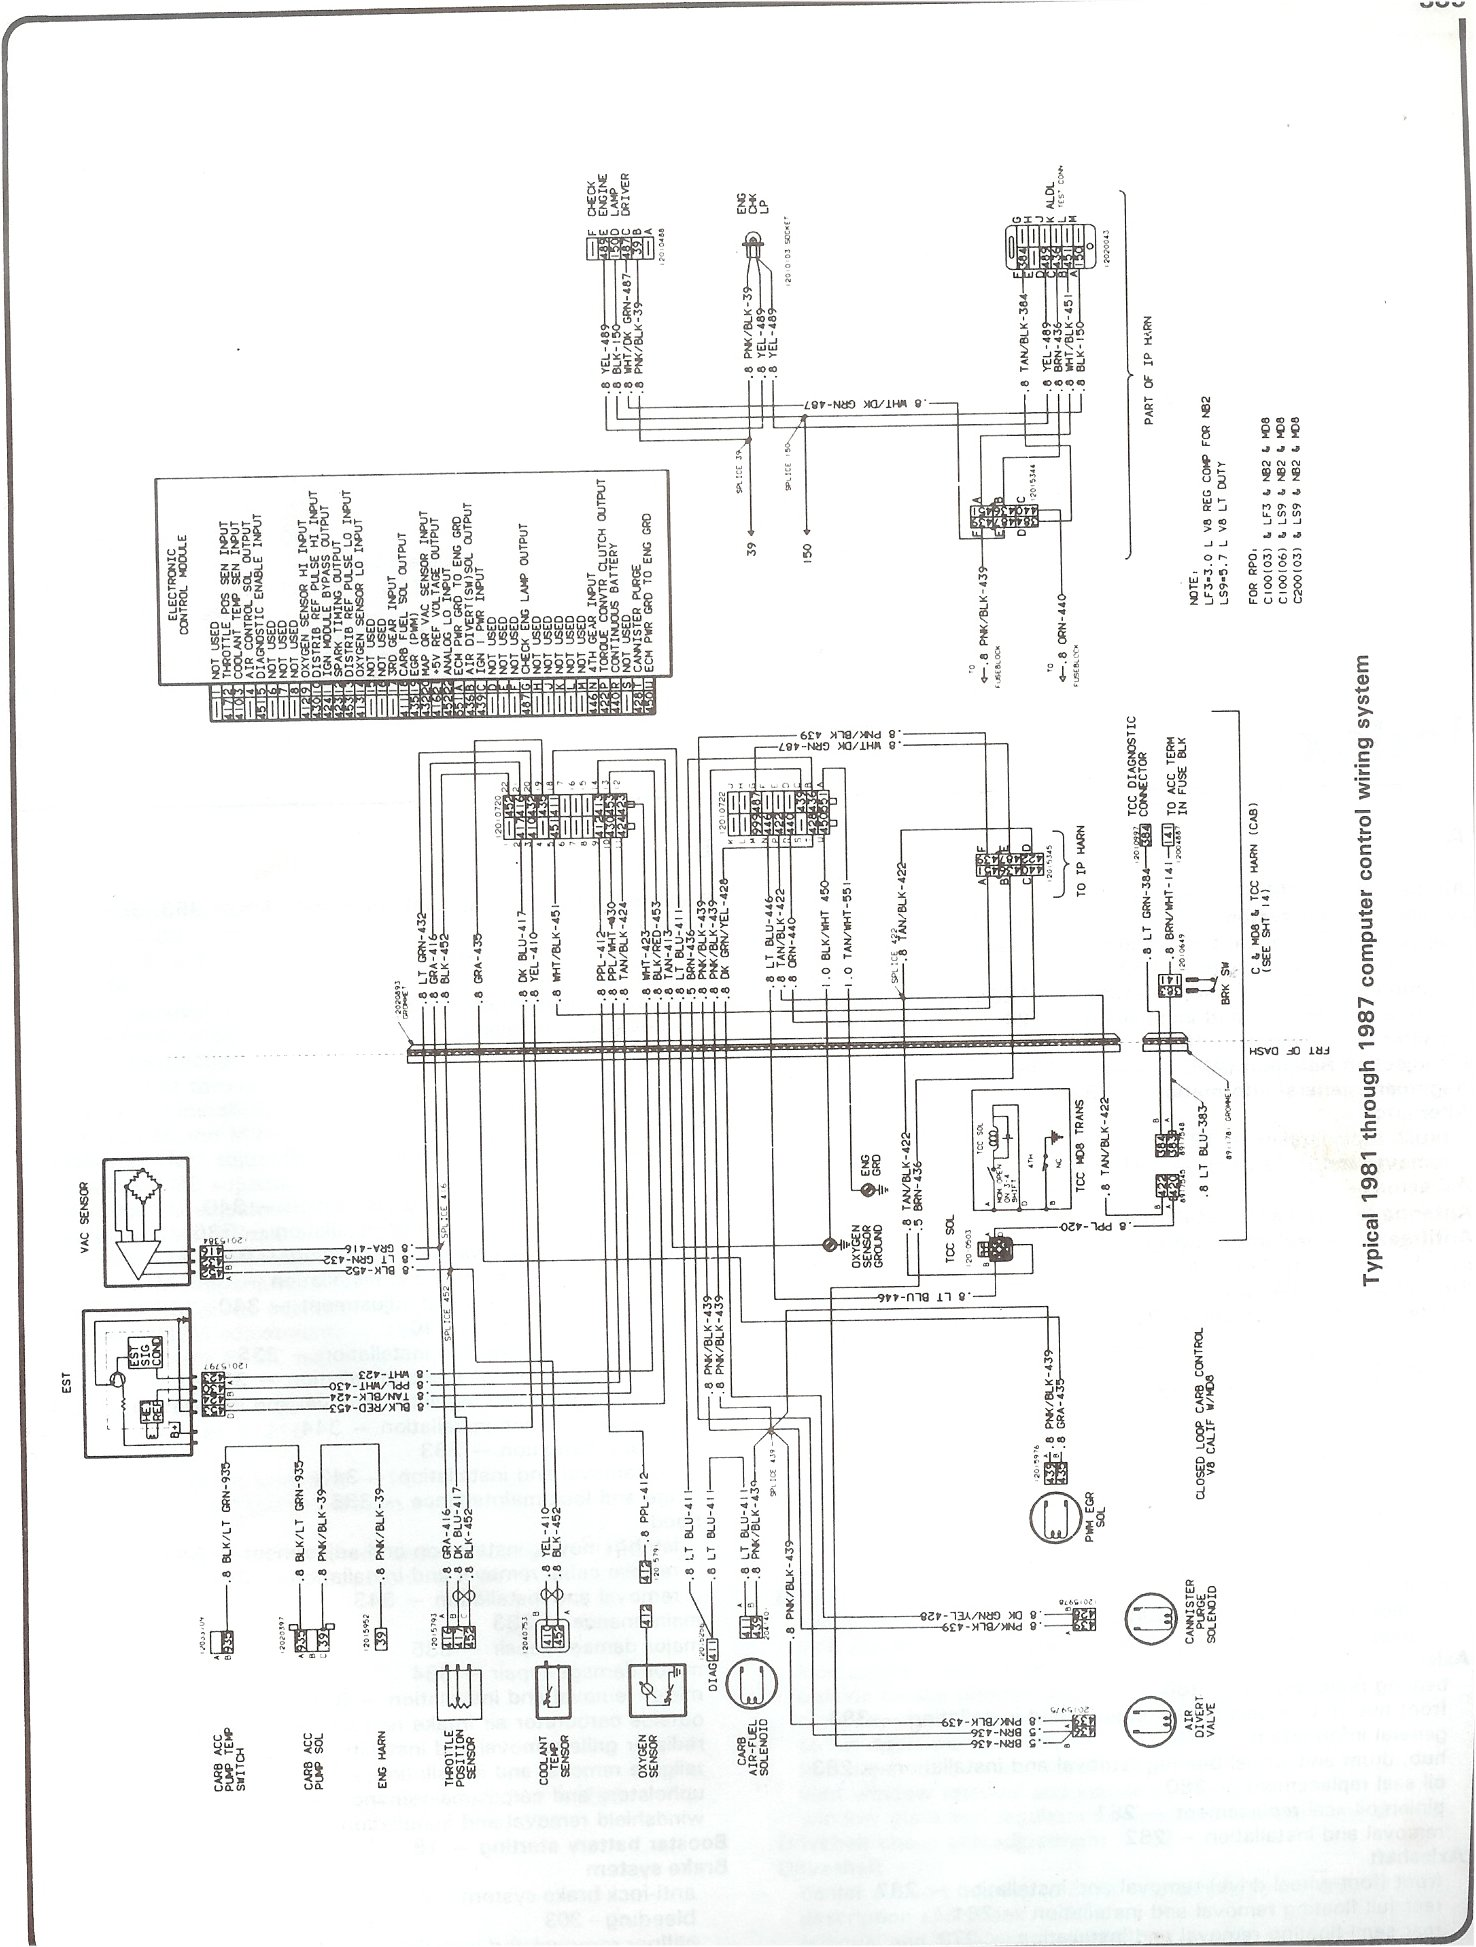 1981 C10 Wiring Diagram Speedometer - Wiring Diagram •